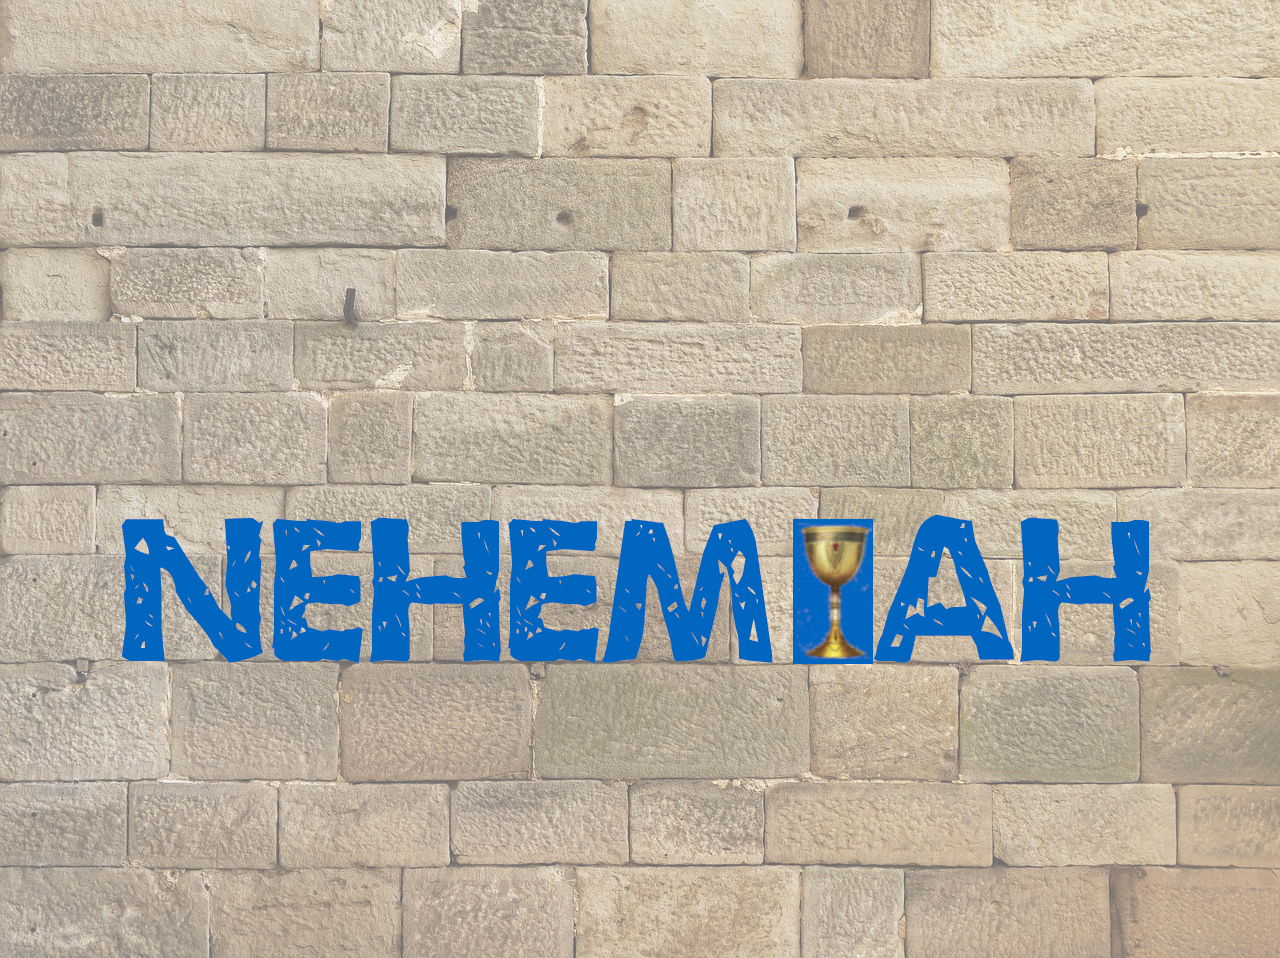 Nehemiah's prayer